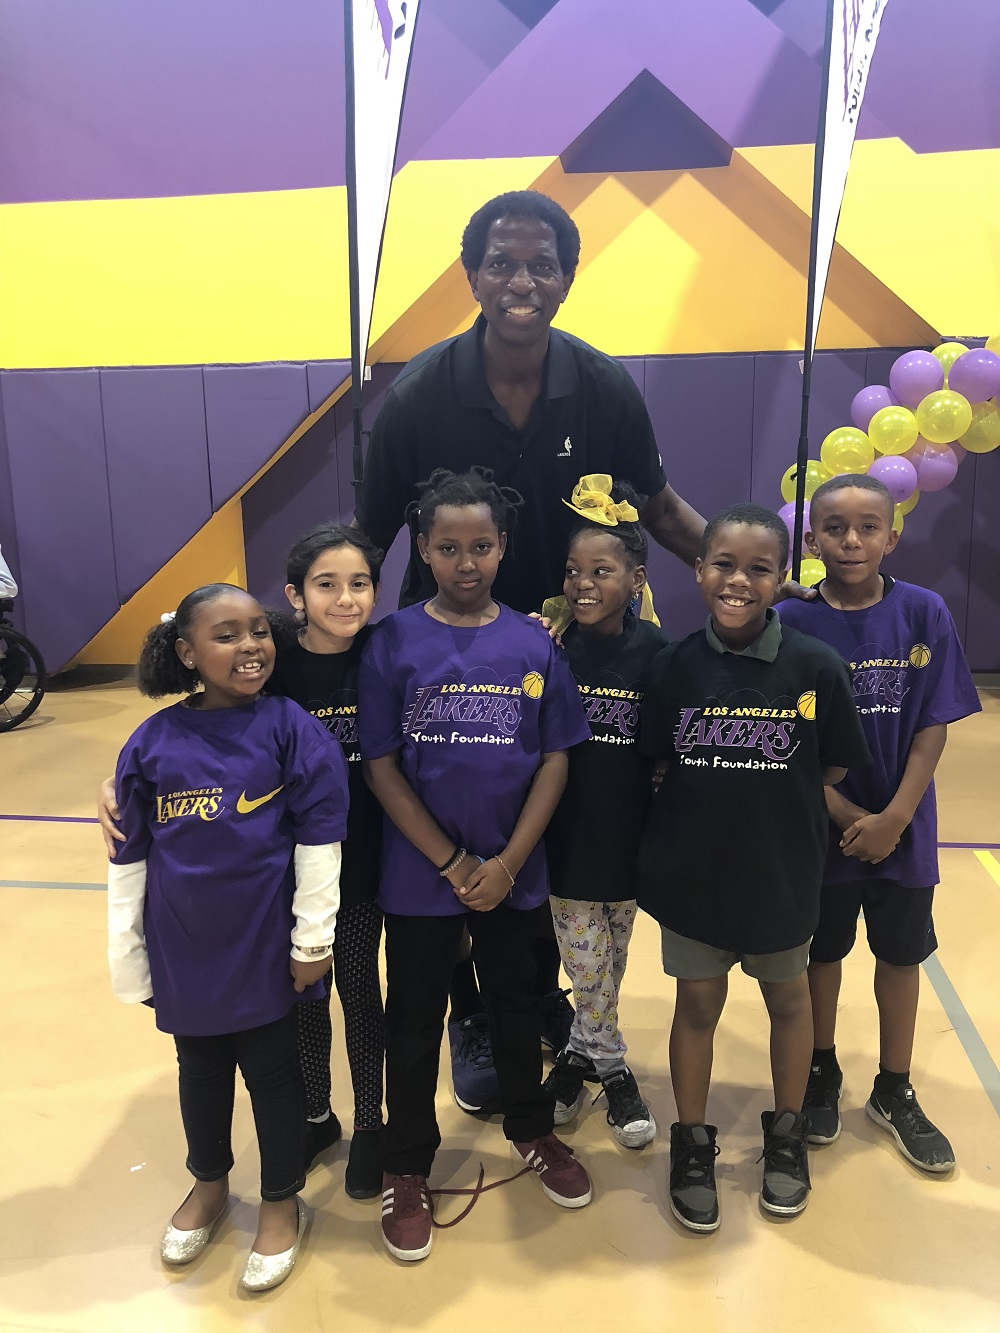 af02e2faa Laker alumnus A.C. Green and children from the Union Rescue Mission pose  for a photo at the Lakers Youth Foundation court dedication in downtown Los  Angeles ...